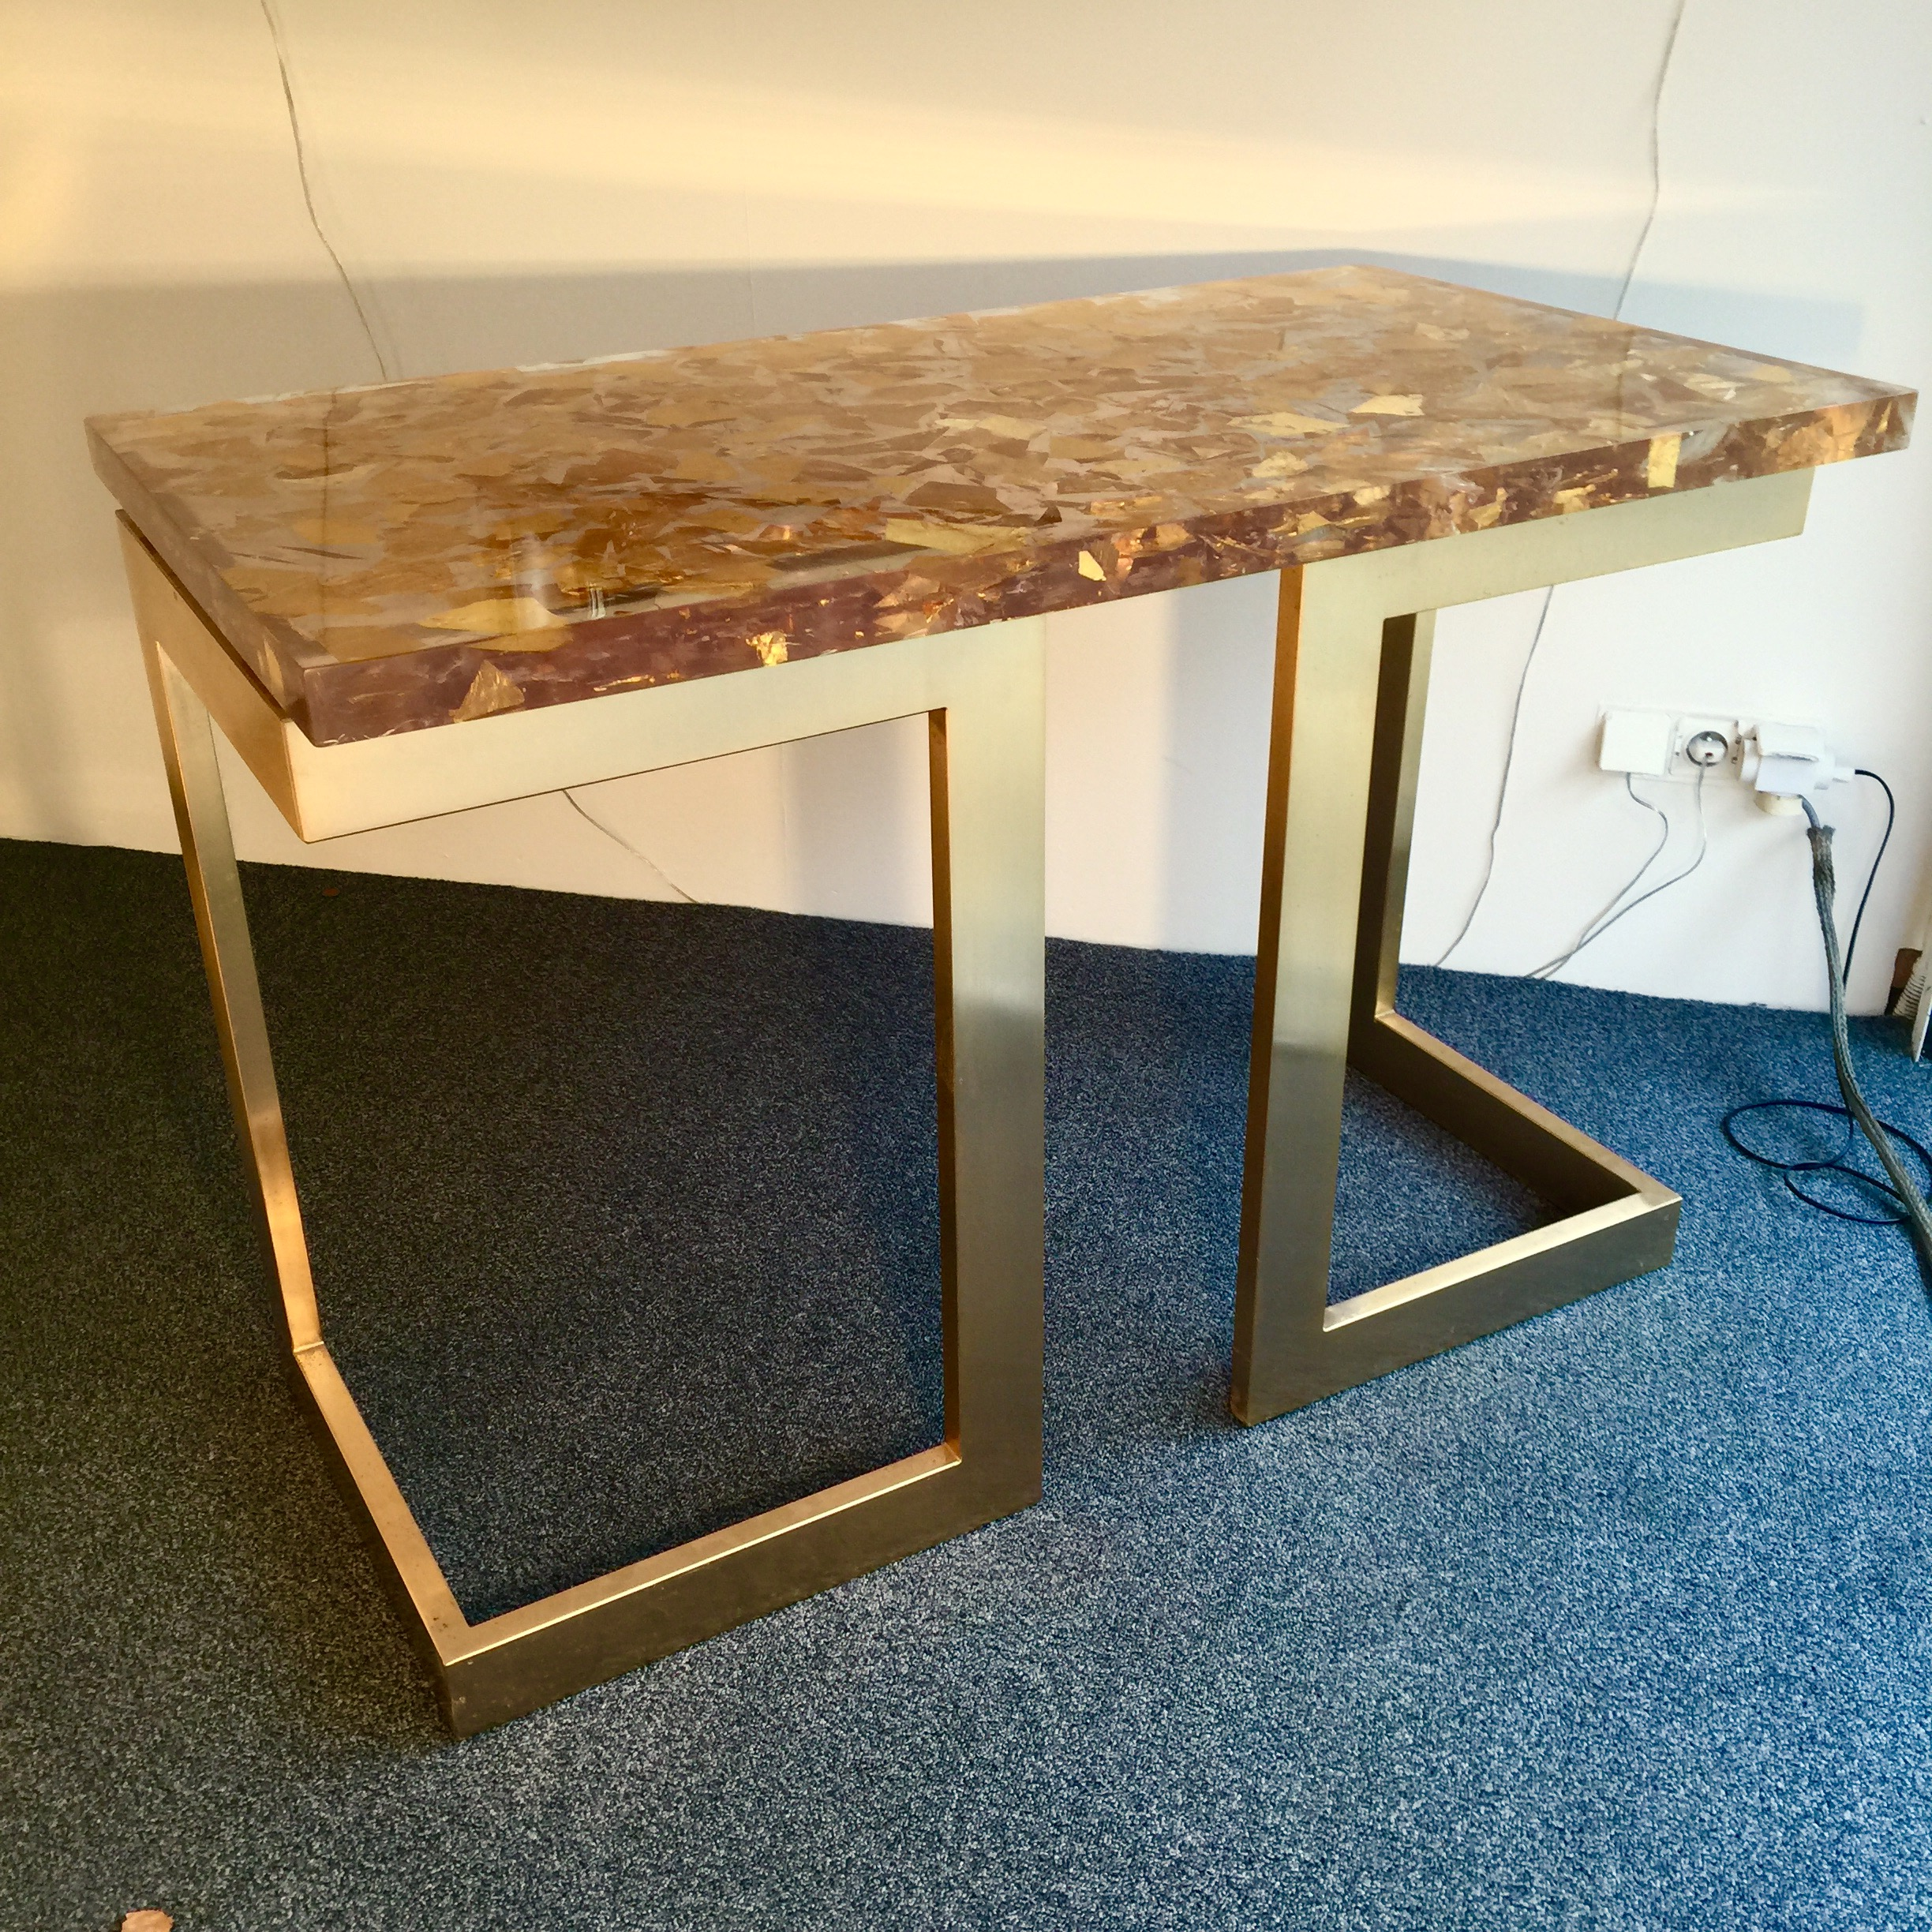 console table in resin with inclusions of gold leaf 24 k (2014